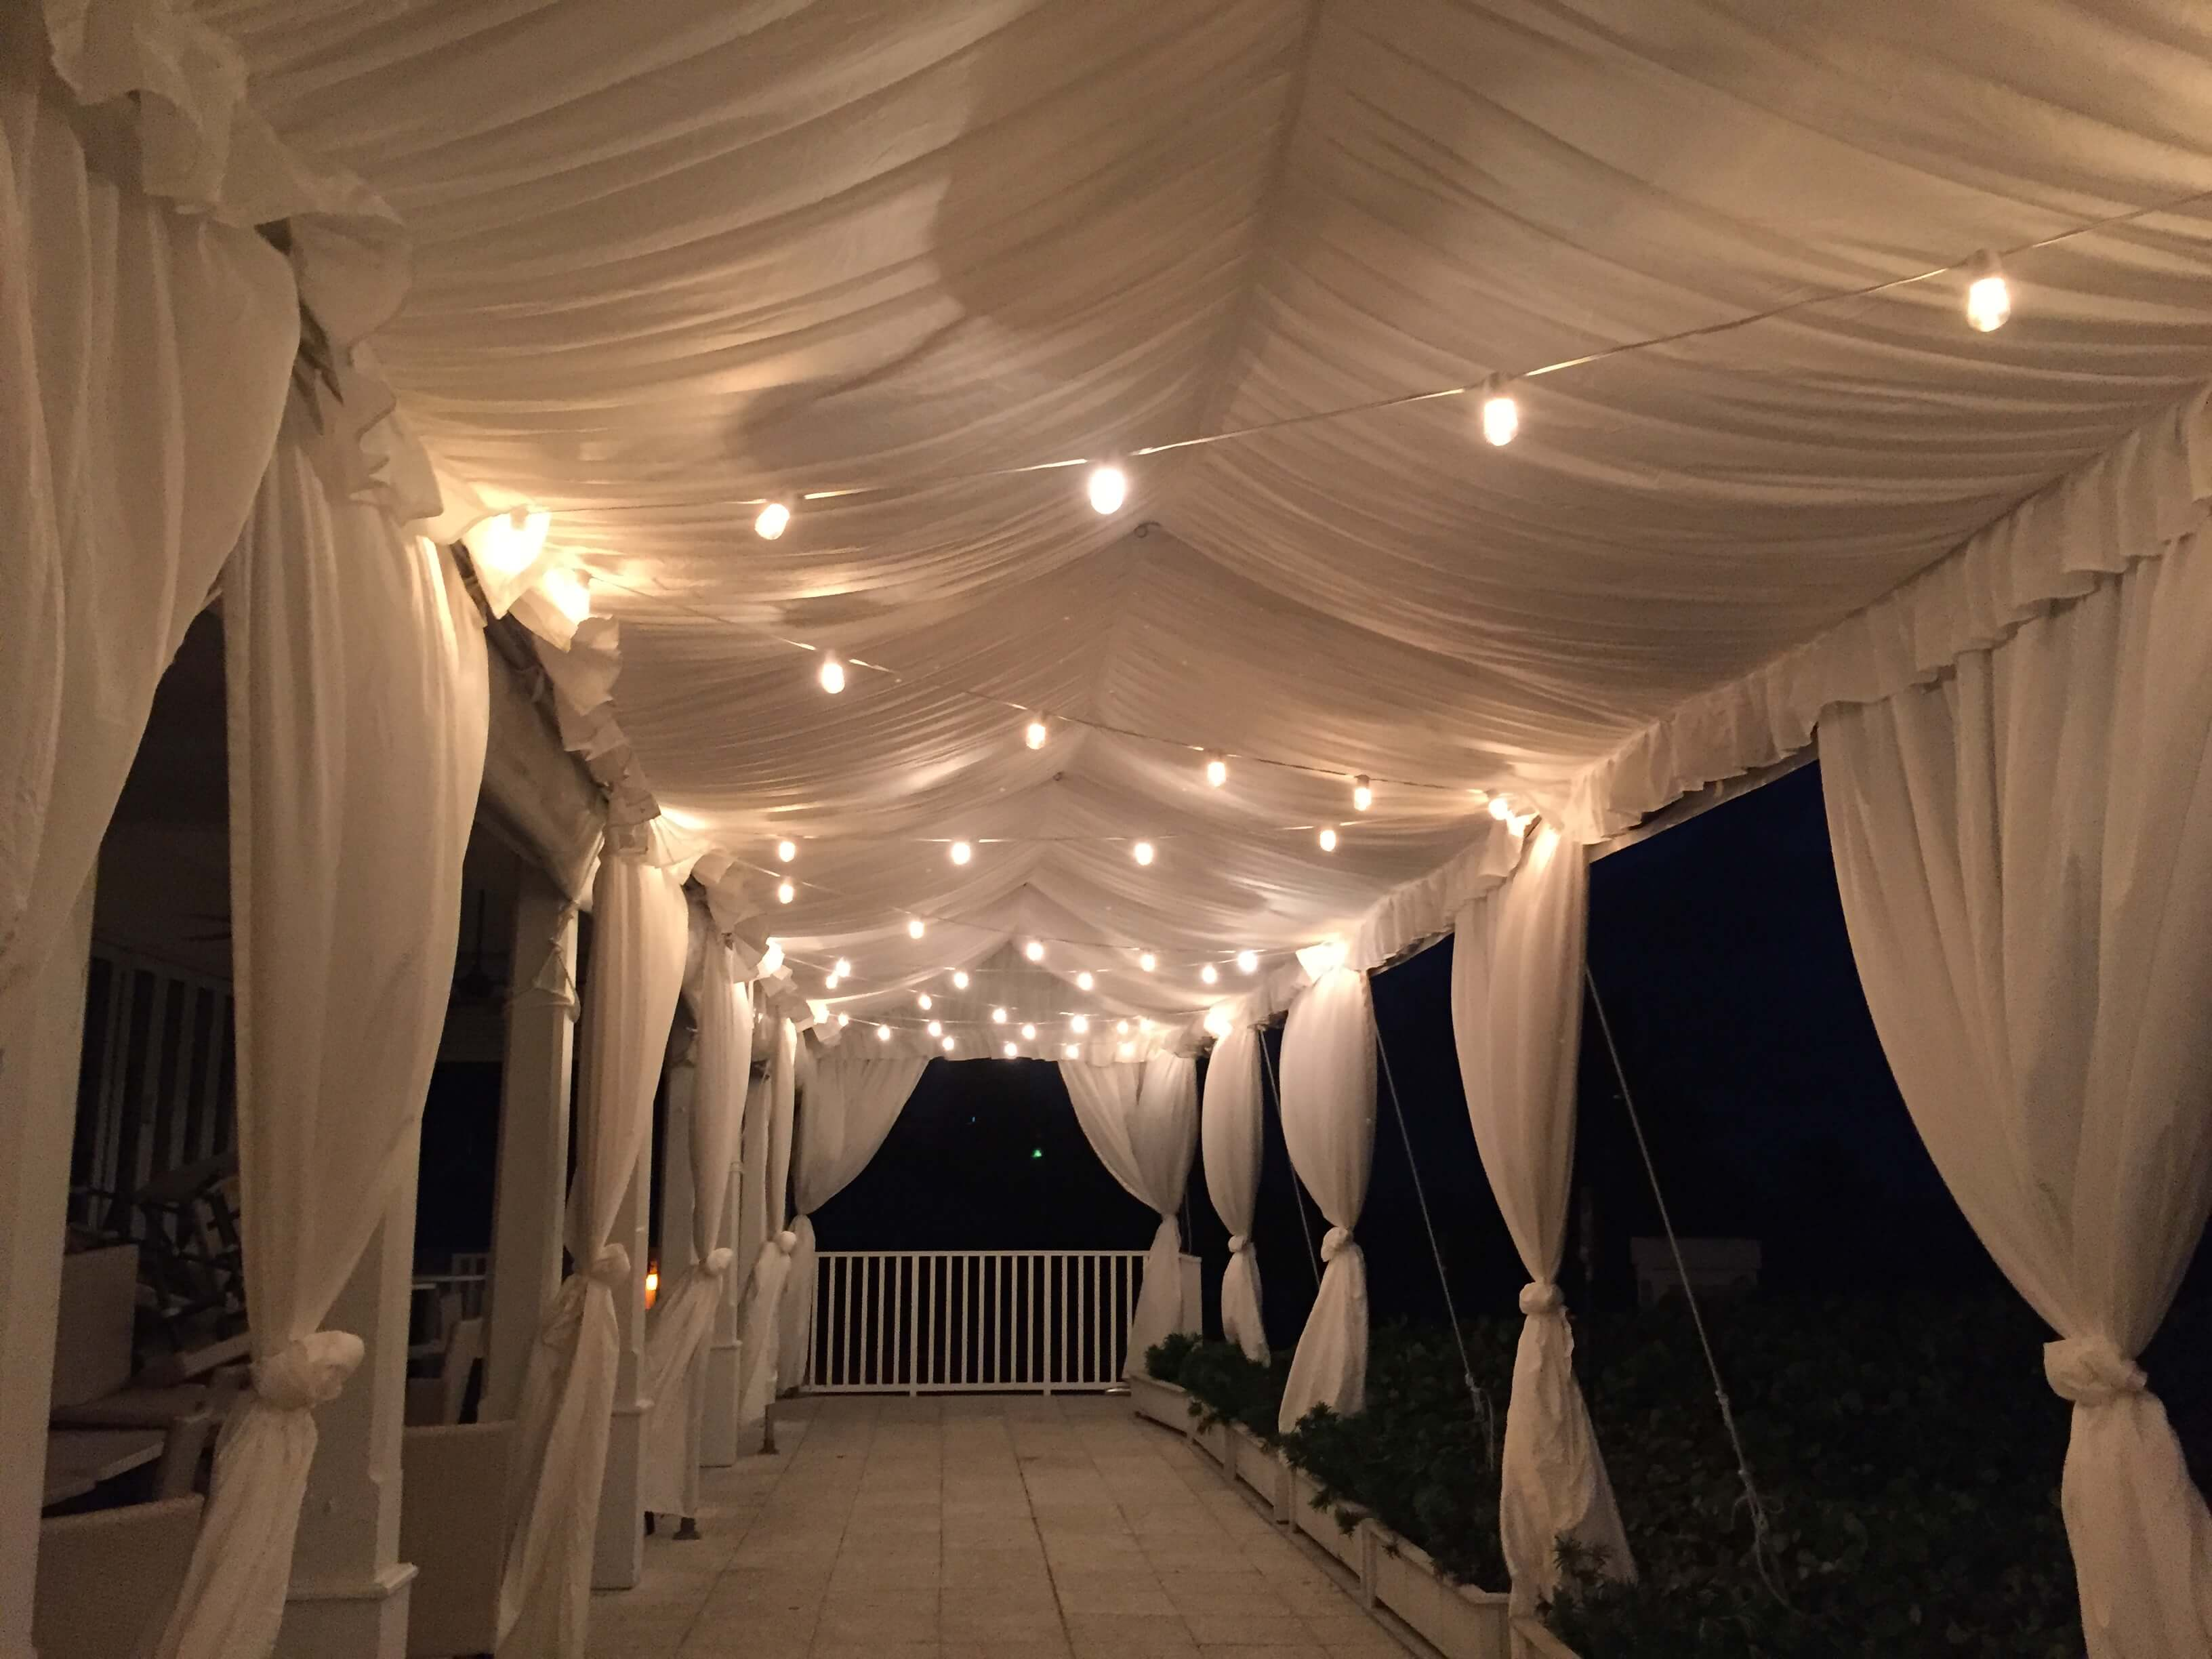 nyc ct drapes rent old nj party services rentals ma for ny event rental dj westchester indoor custom furniture